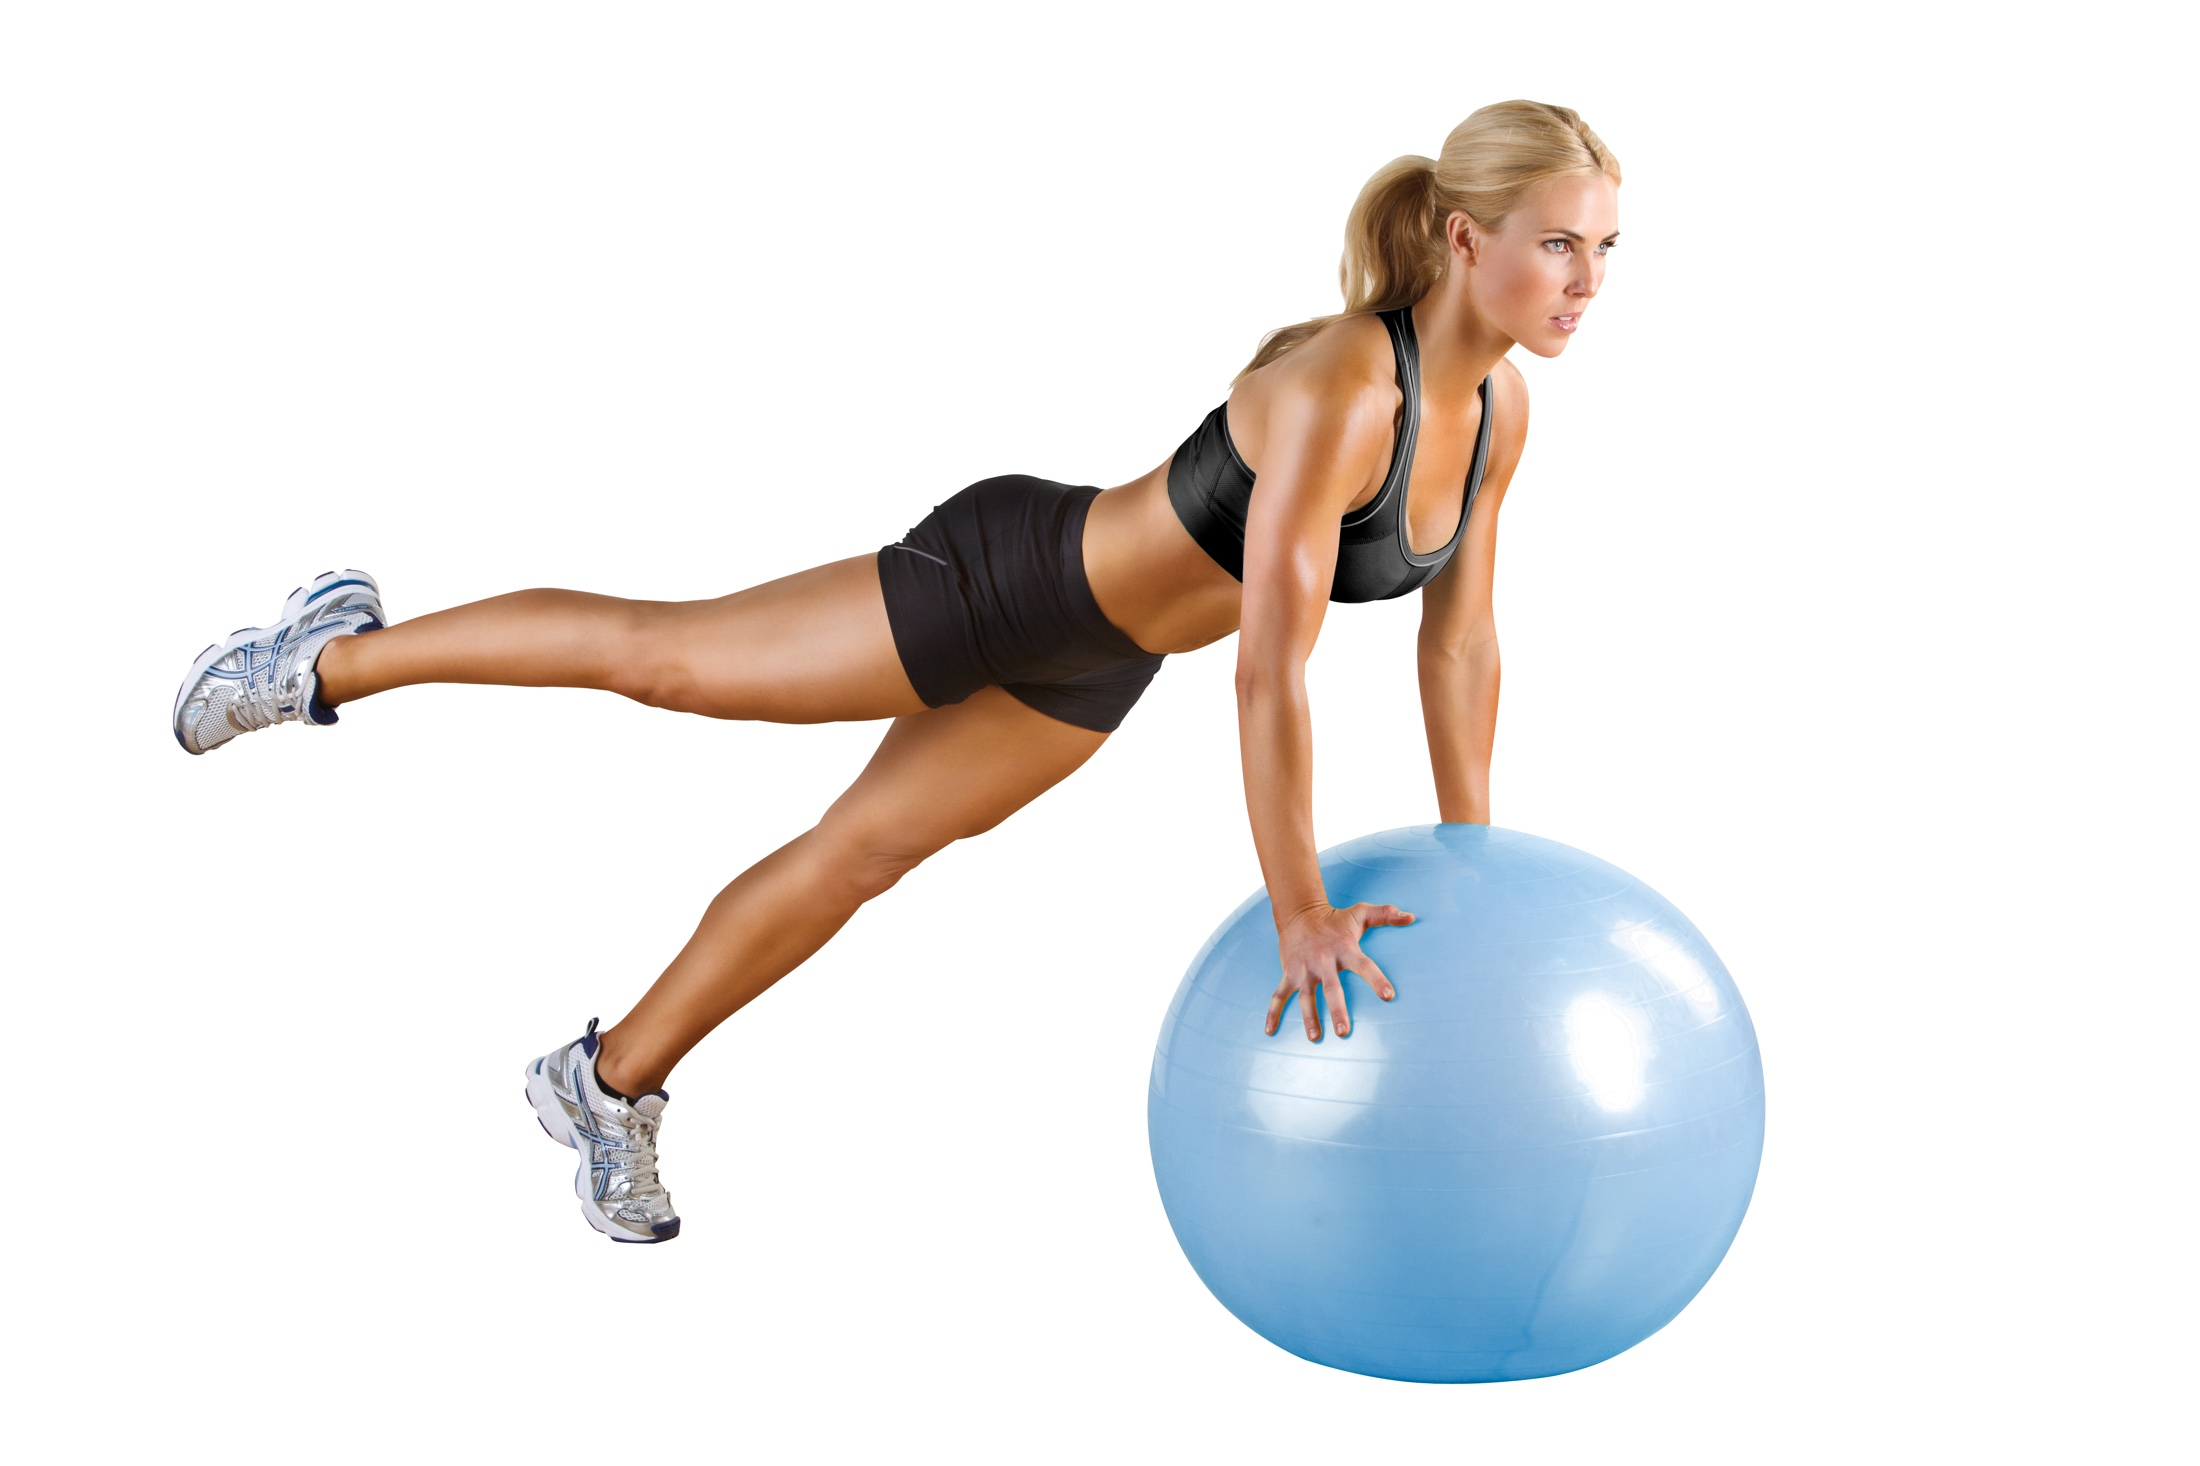 NordicTrack 65 cm Stability Ball gallery image 3